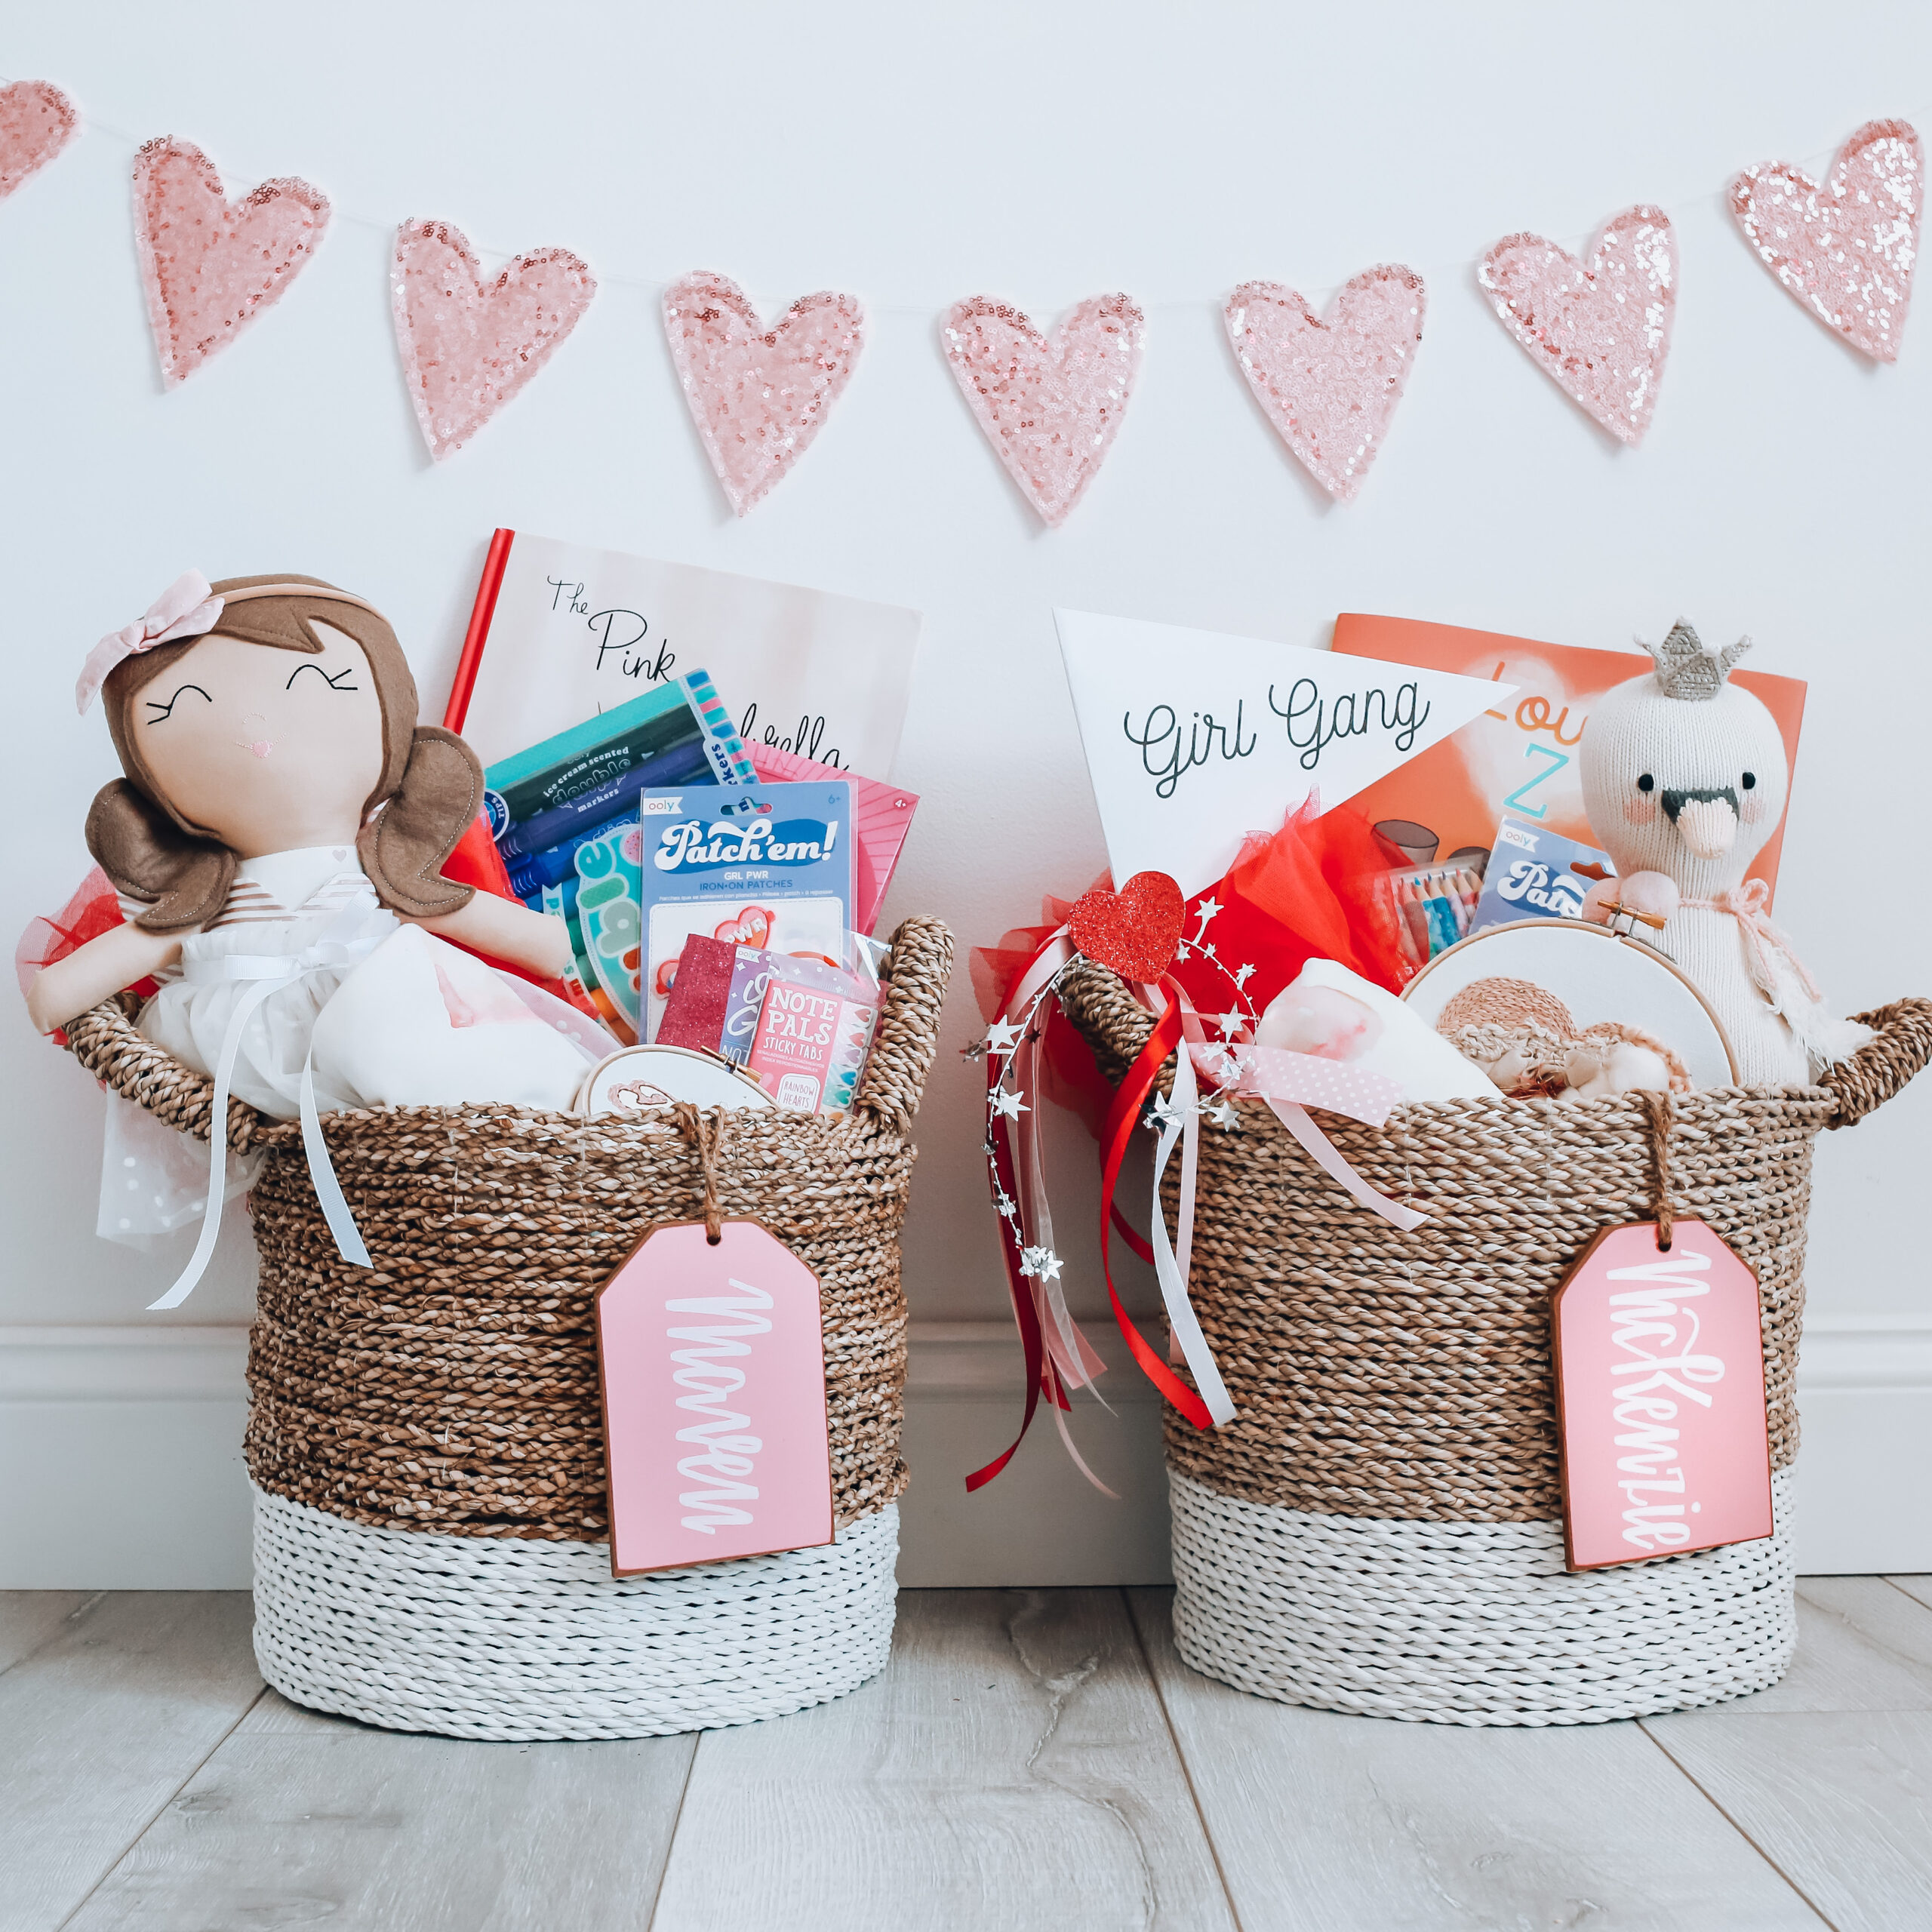 Two seagrass baskets with doll, stuffed animal and Valentine candy with two pink name tags.